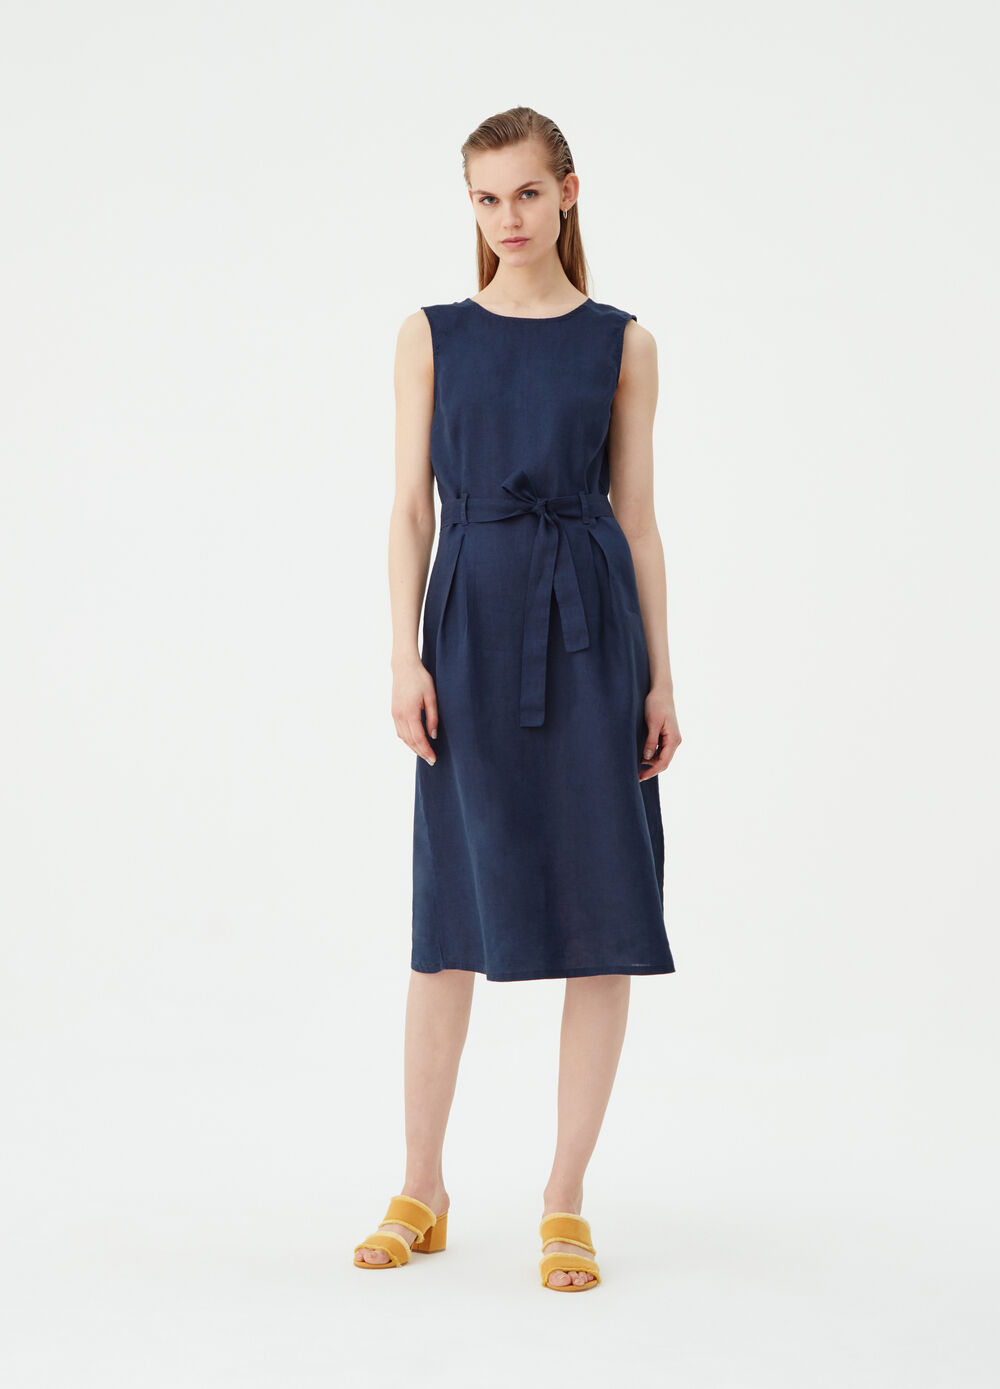 Sleeveless linen dress with belt